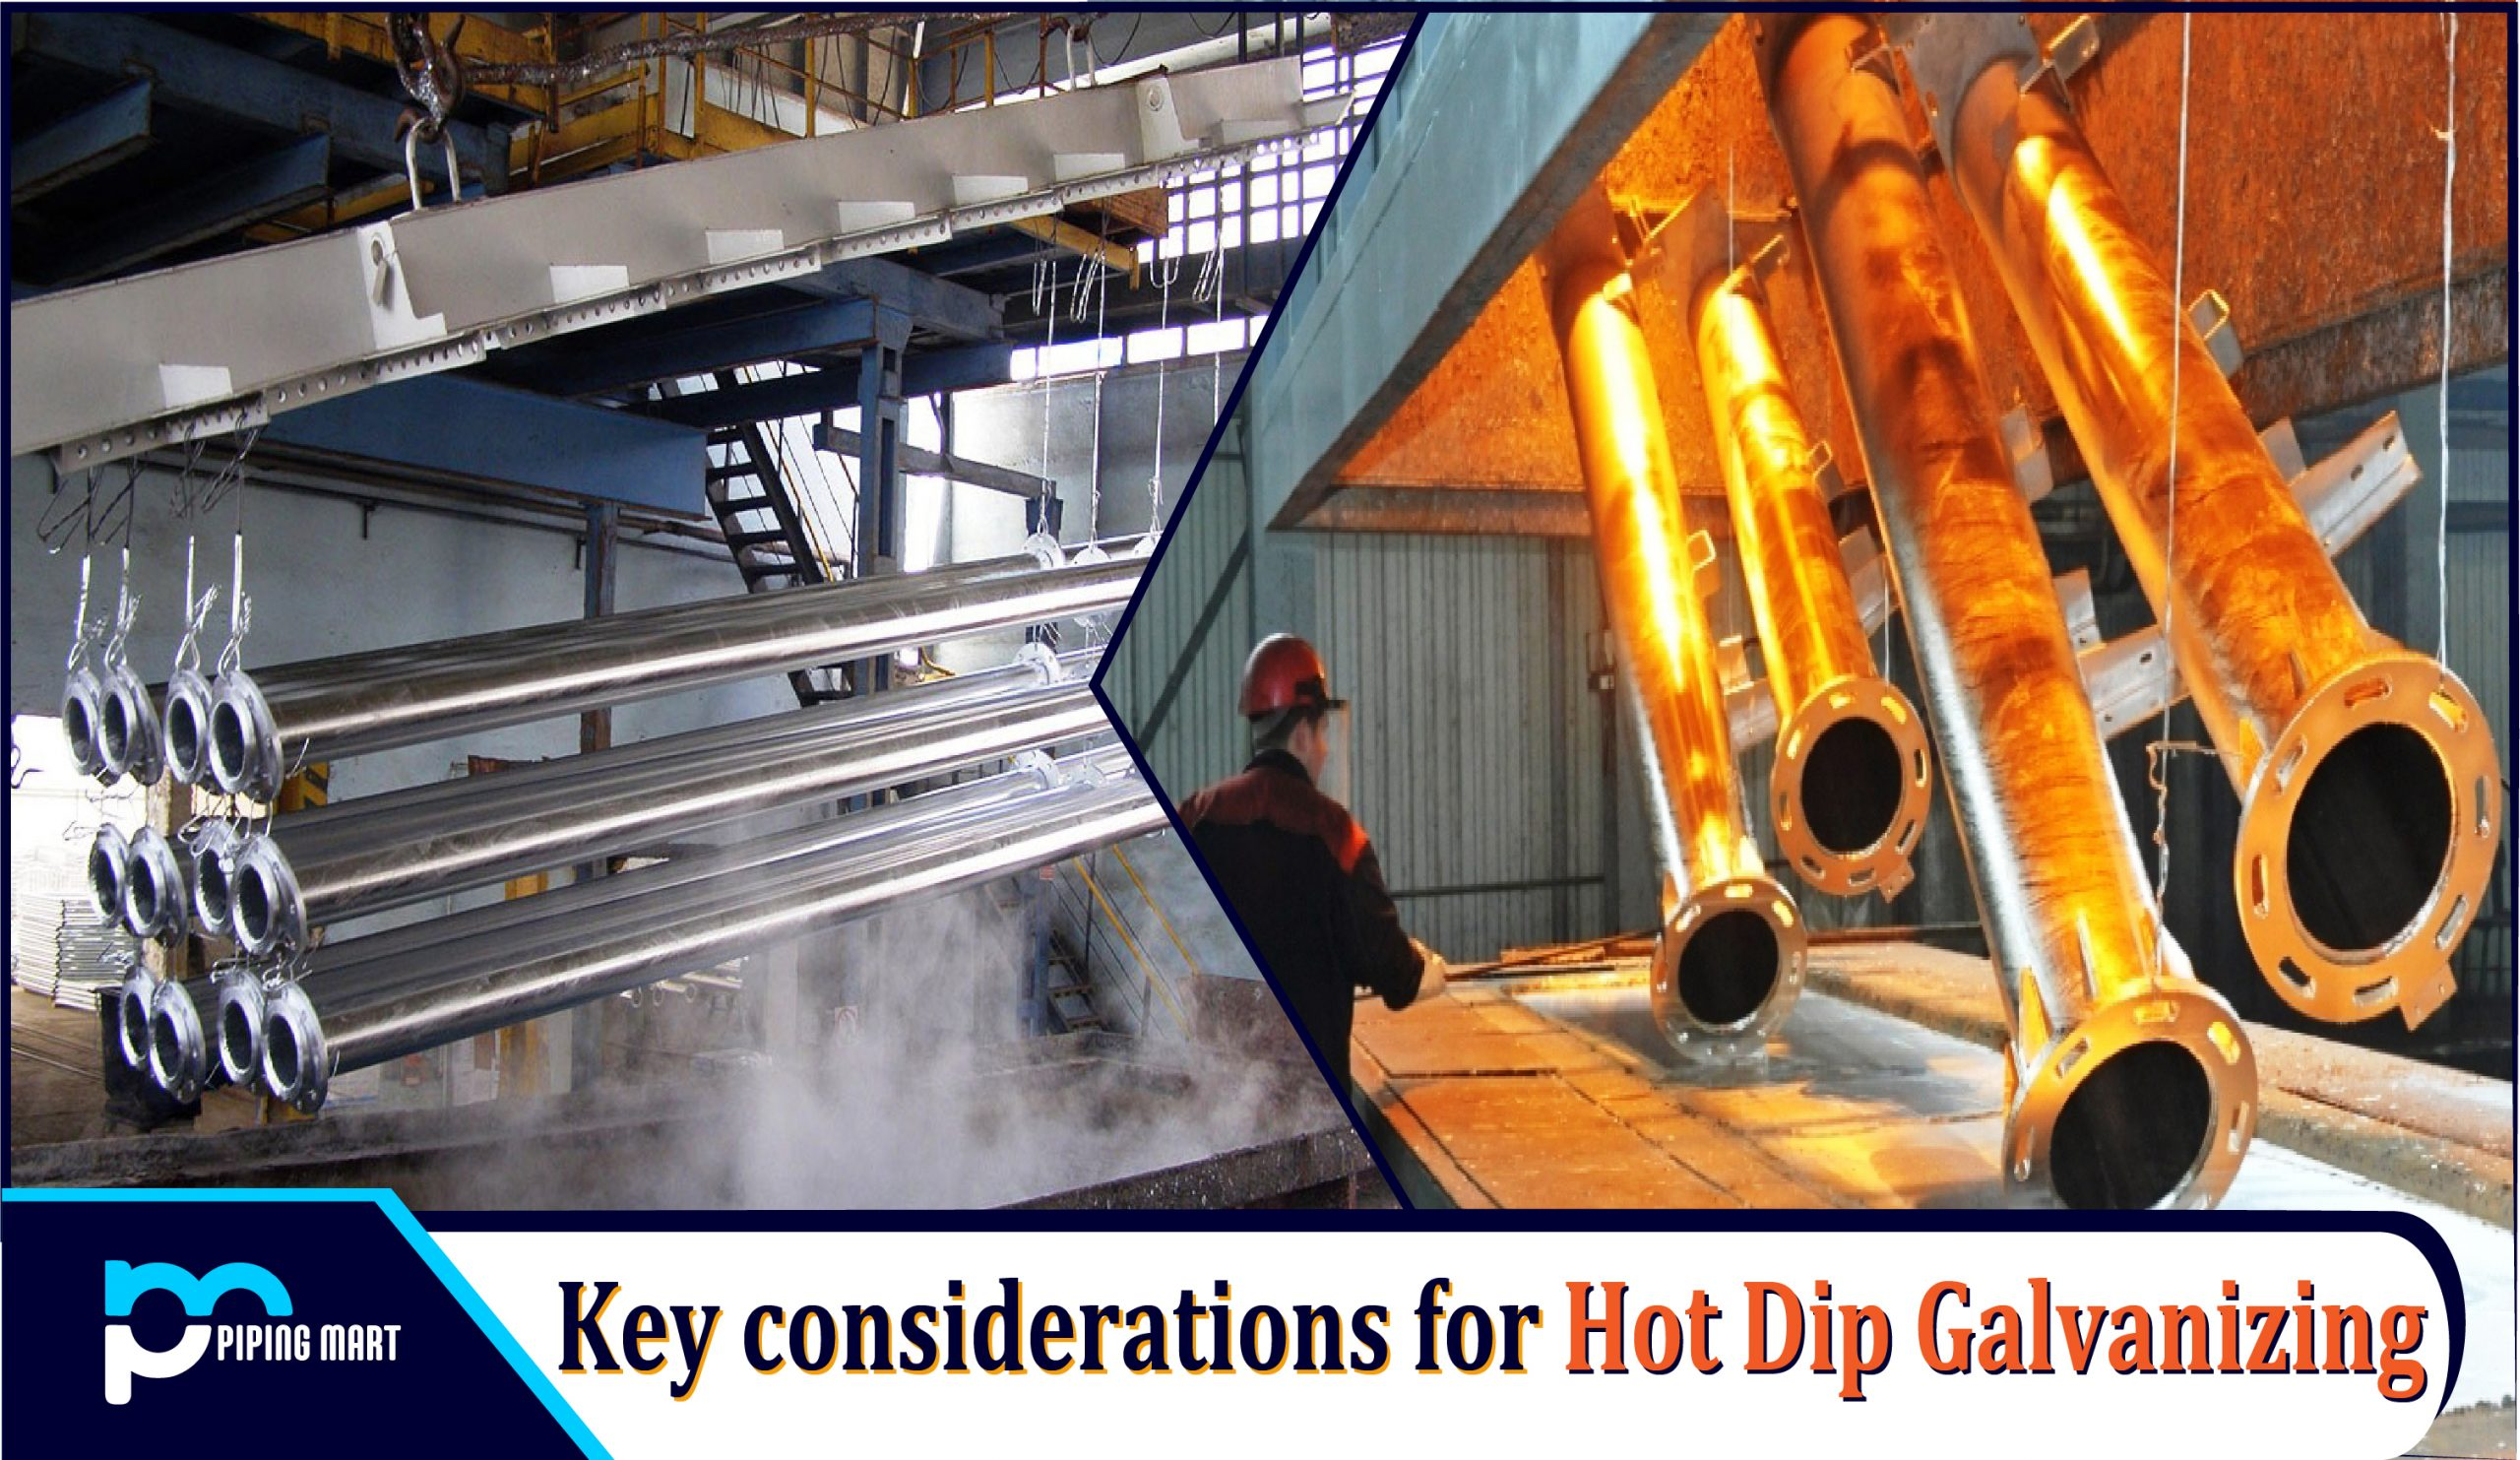 Key Considerations for Hot Dip Galvanizing